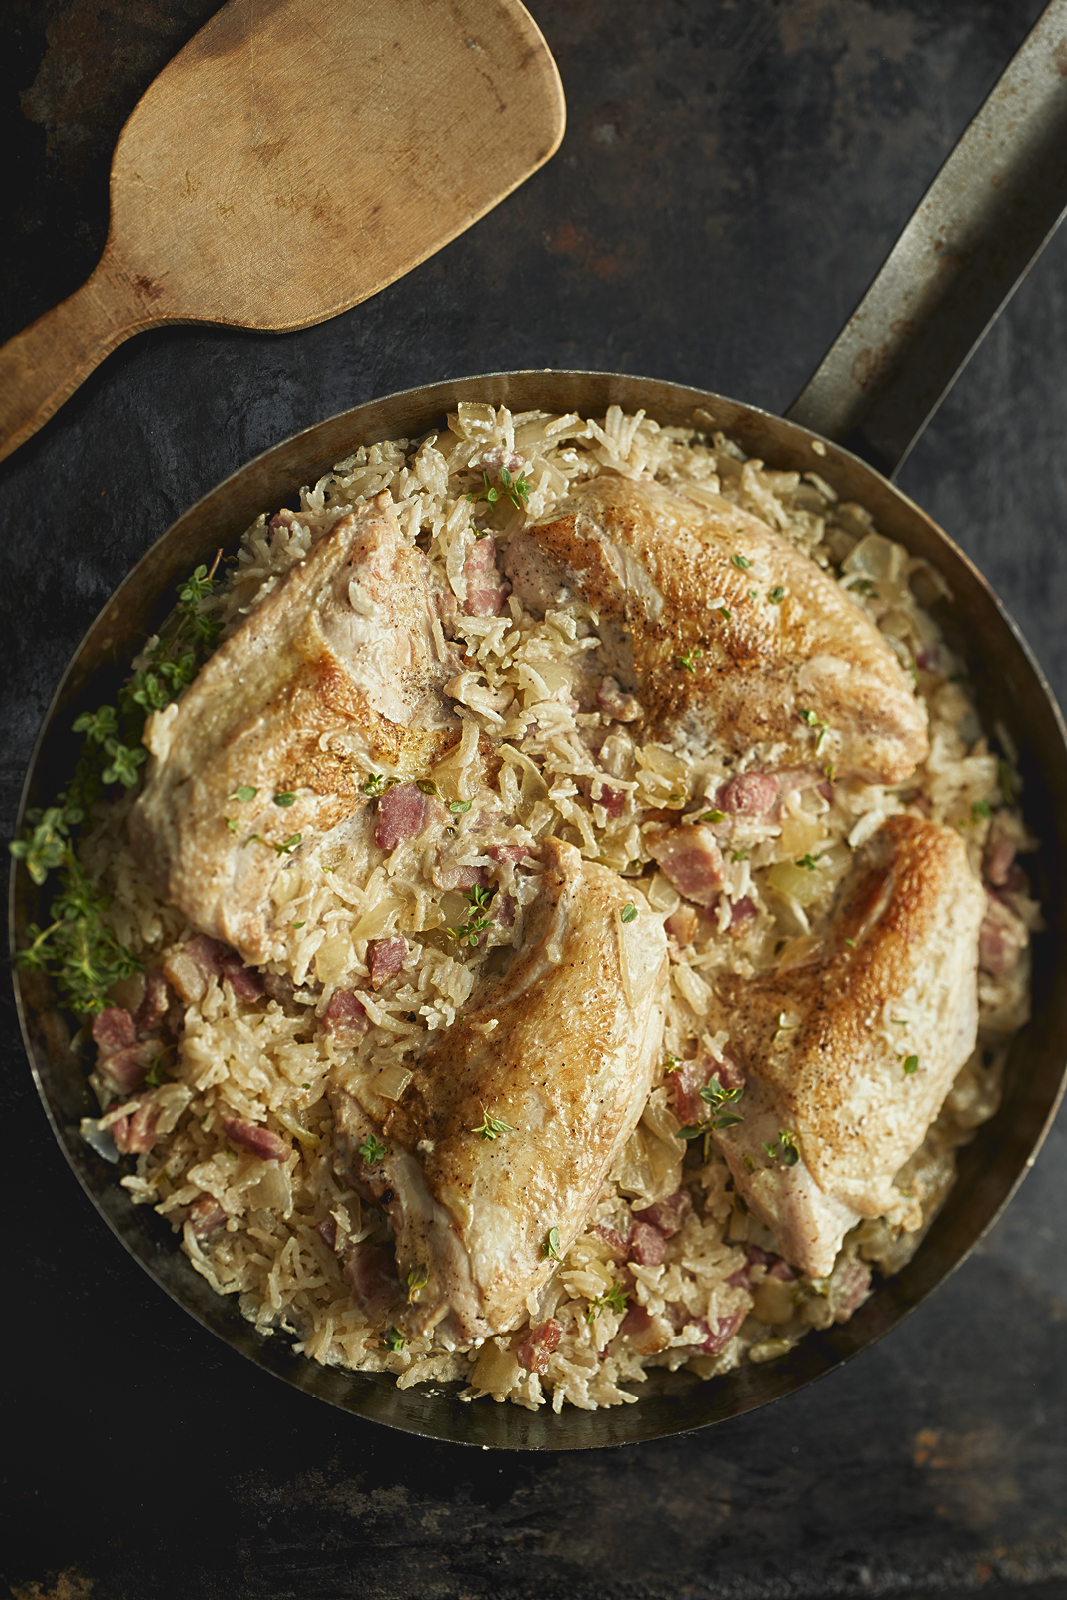 COCONUT CORIANDER CHICKEN PILAF